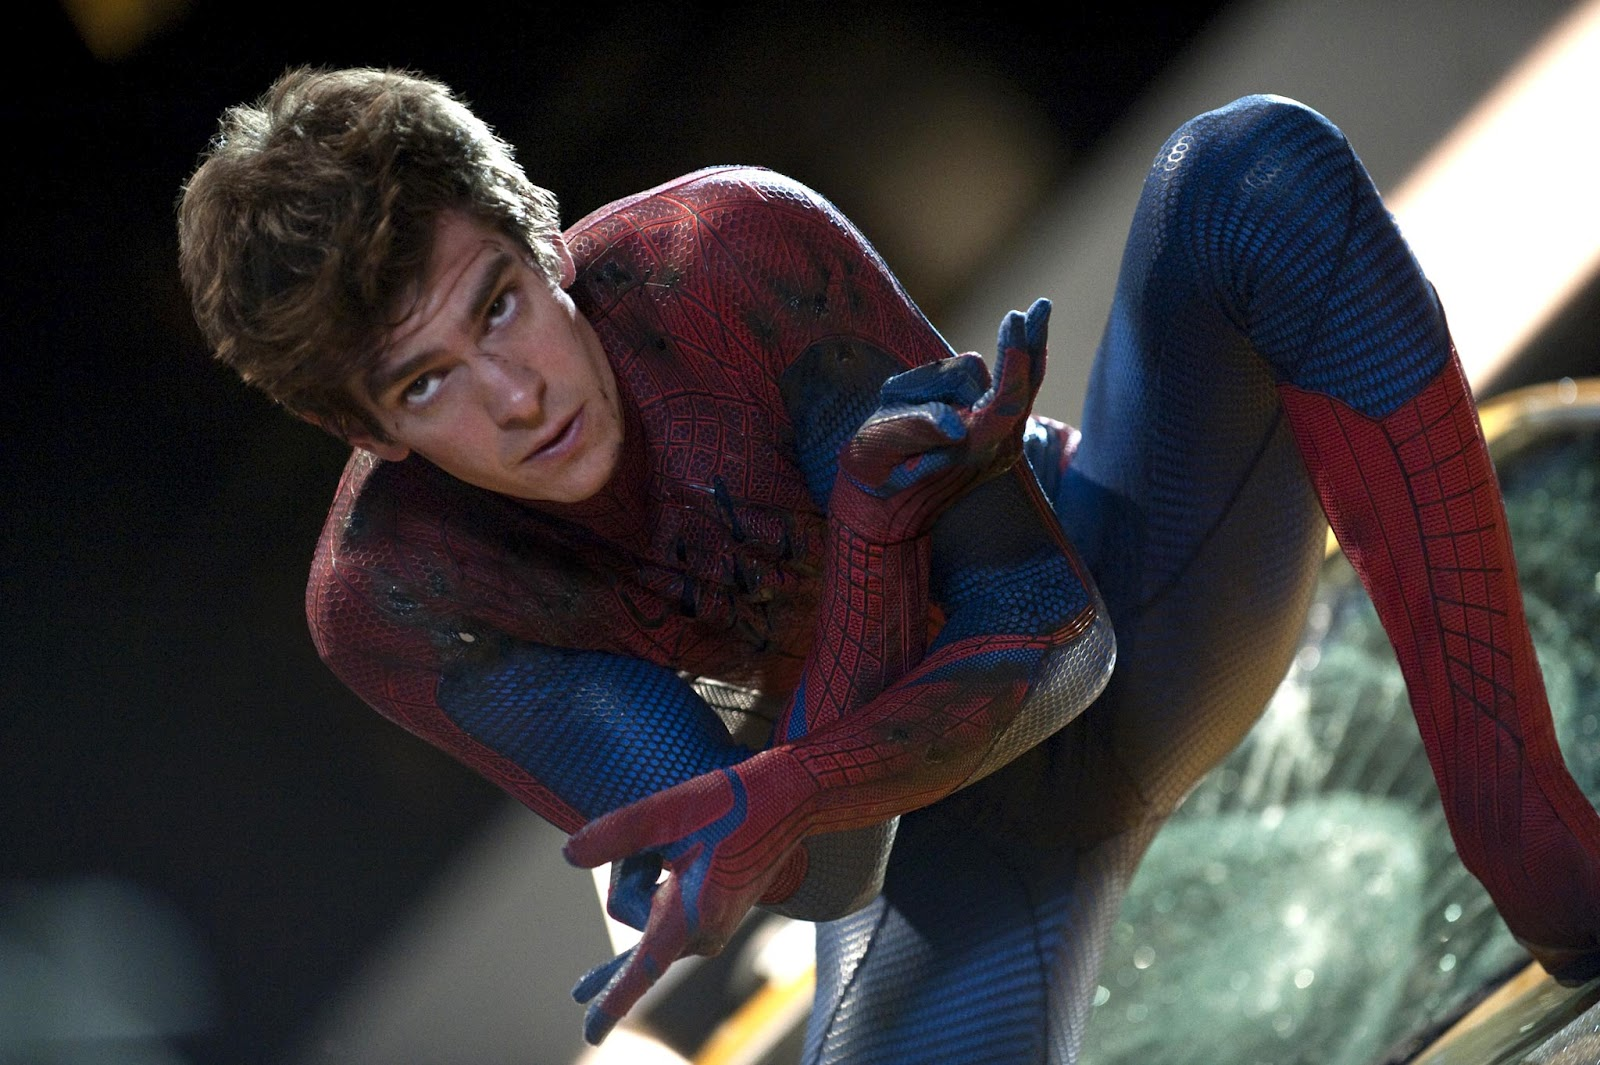 (Re)Viewed by James K. Moran: The Amazing Spider-Man film ...